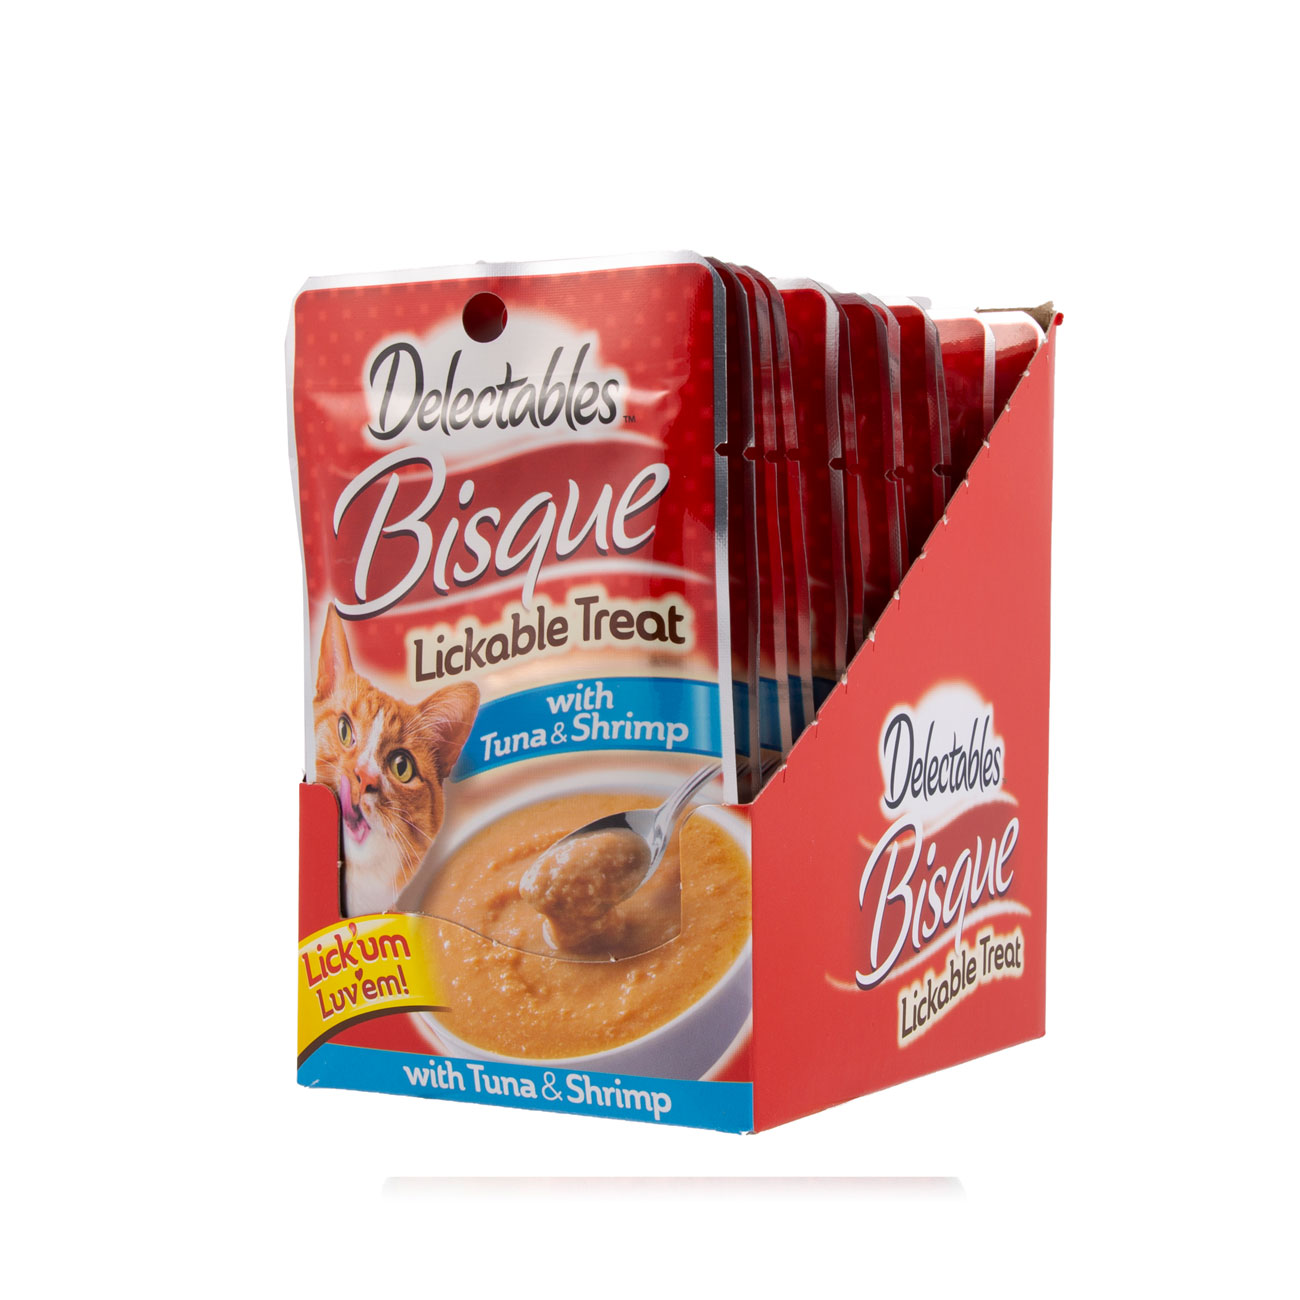 Hartz Delectables Lickable Treat for cats, front of opened carton. Tuna and Shrimp Bisque.